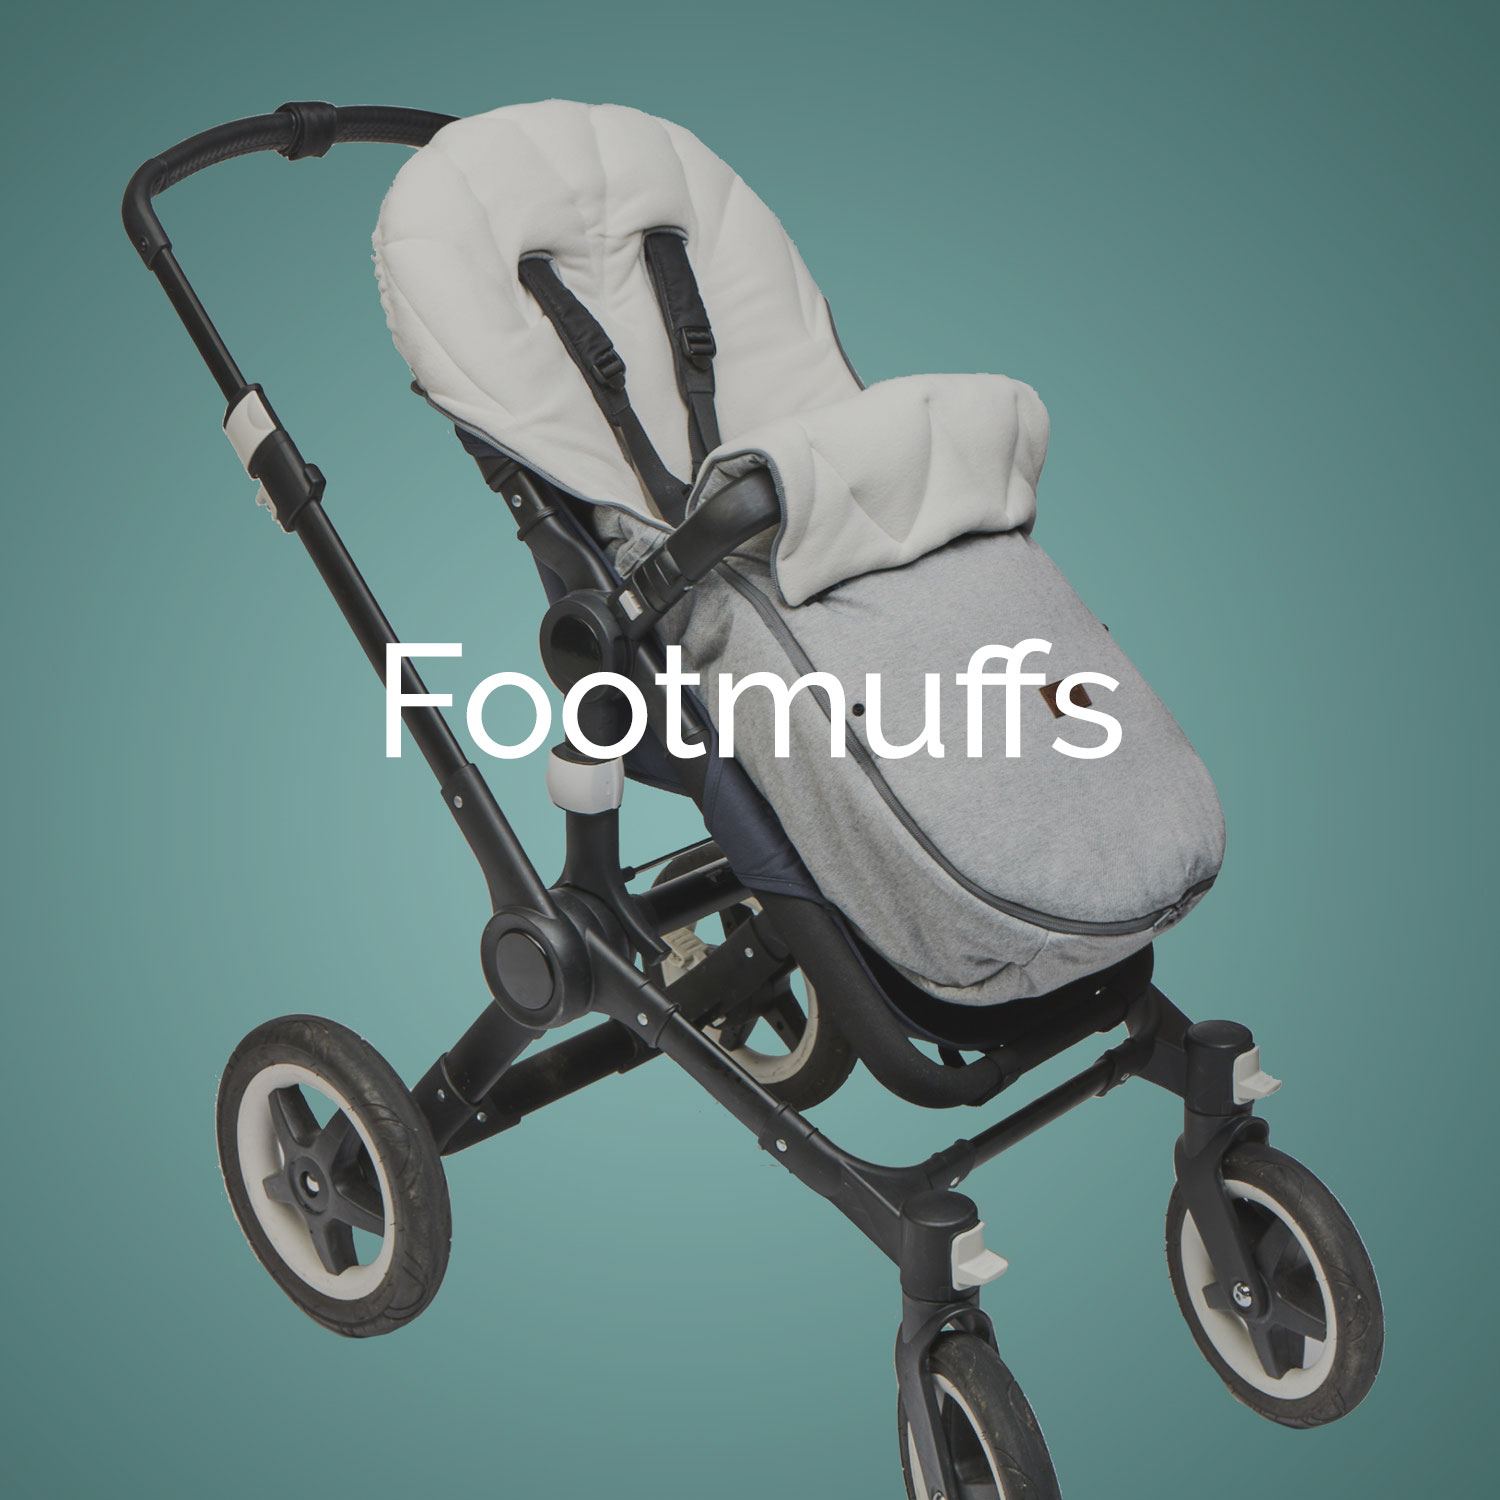 Najell Product Categories - Footmuffs